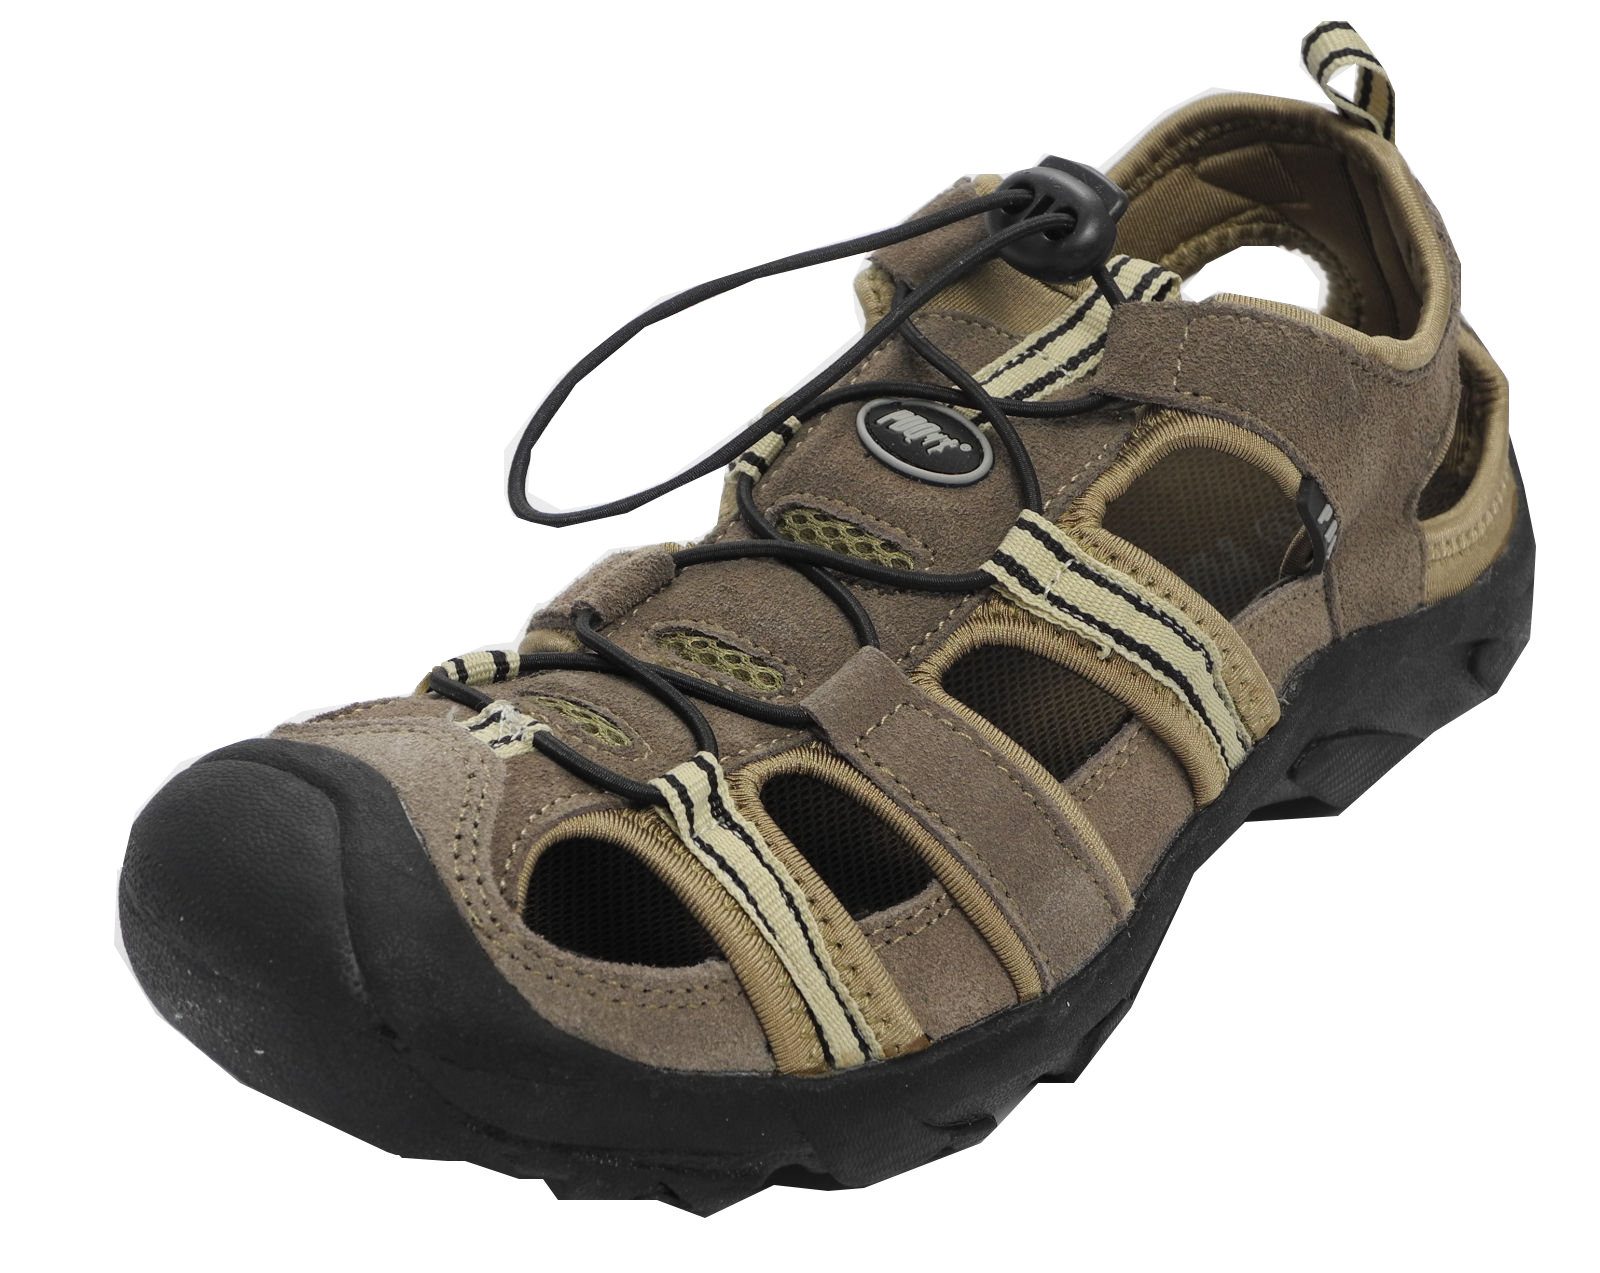 Mens Suede Leather Closed Toe Sandals Summer Hiking Shoes Brown ...